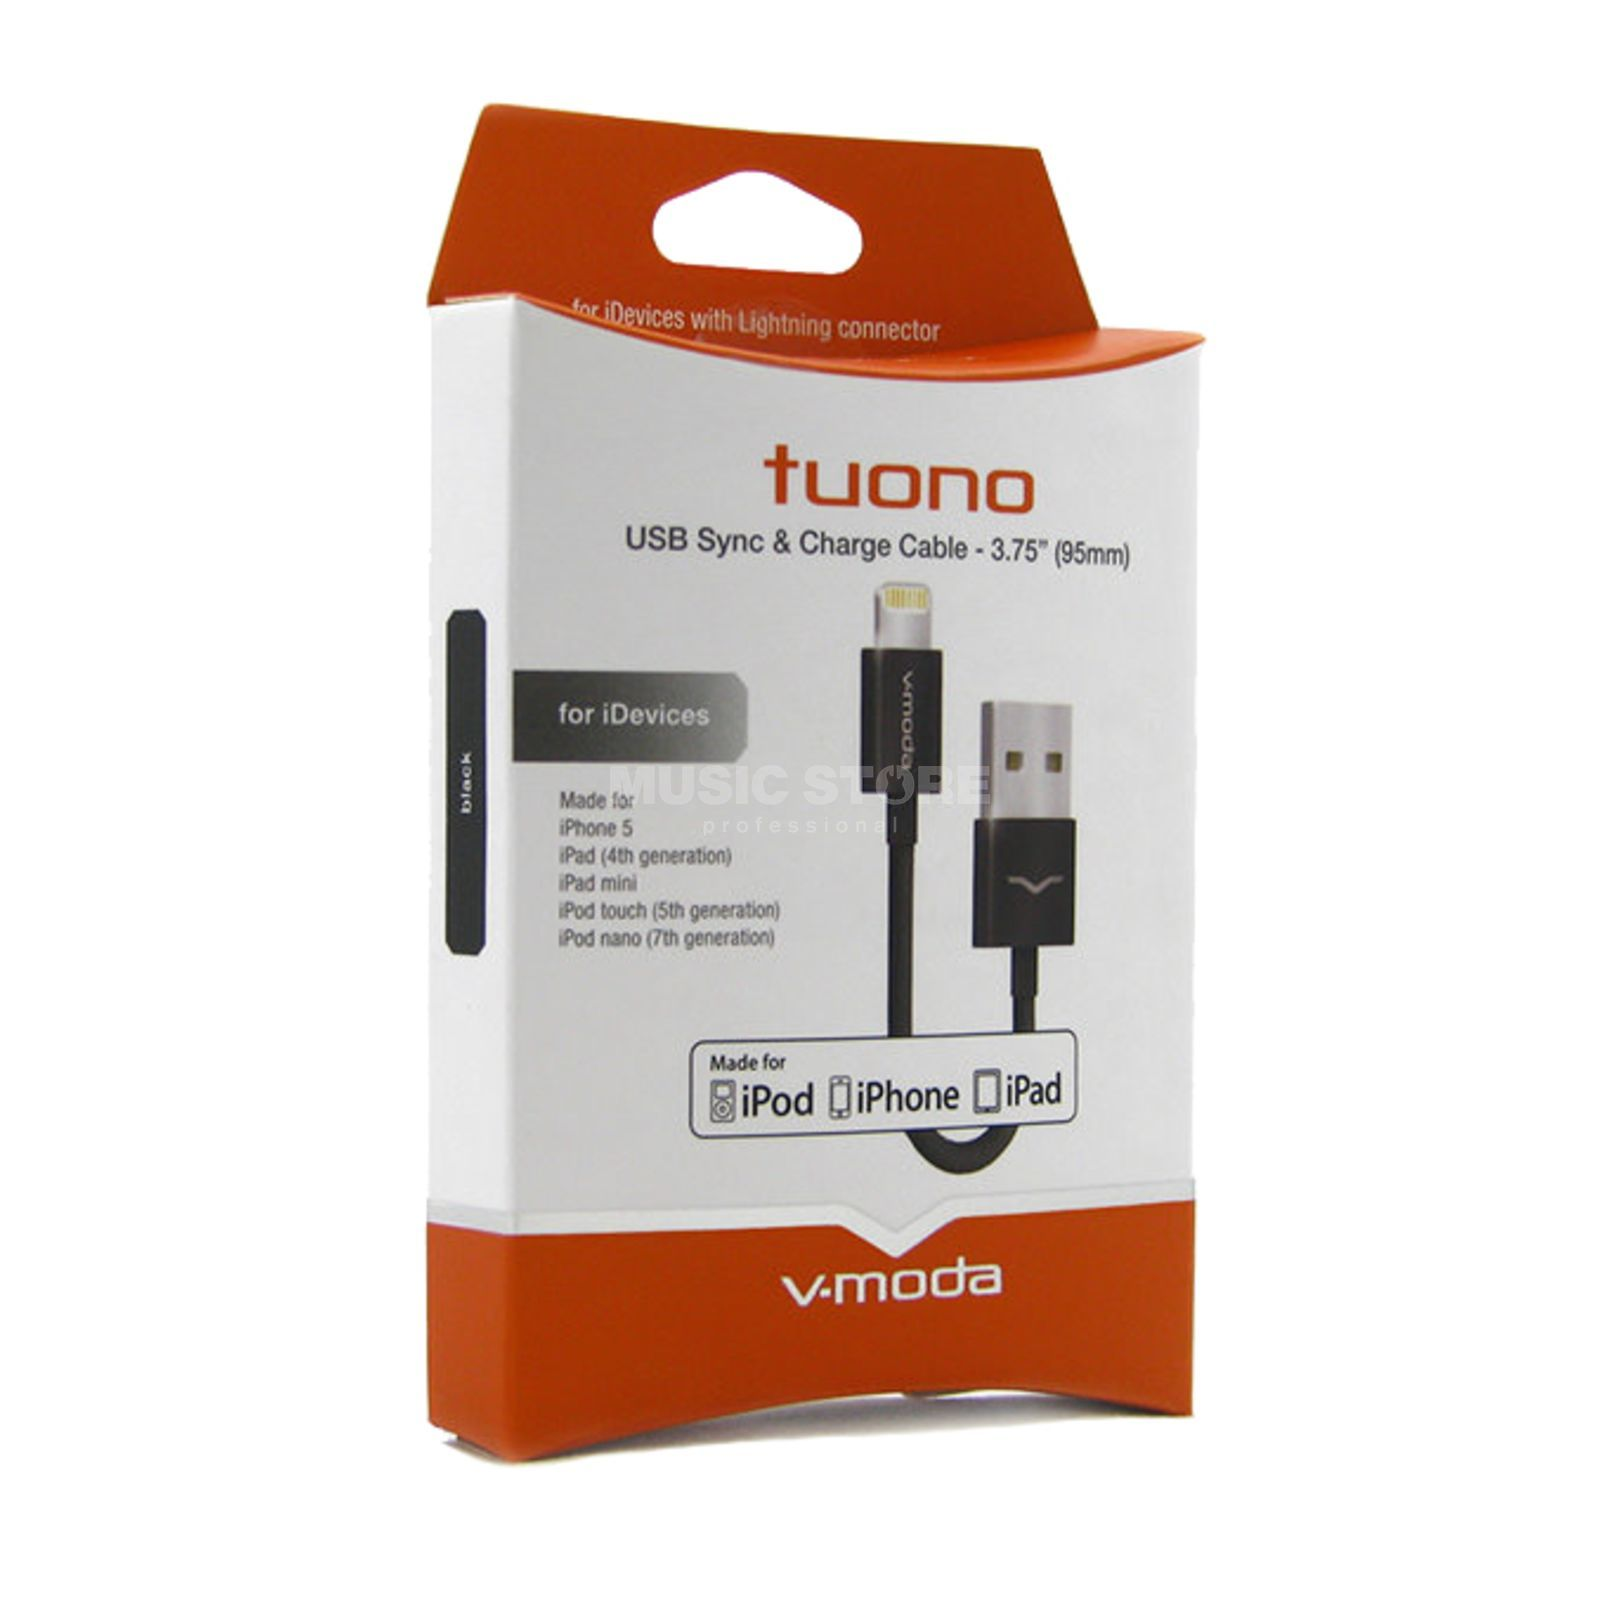 V-Moda Tuono Lightning Cable black Kabel für iDevices Produktbild